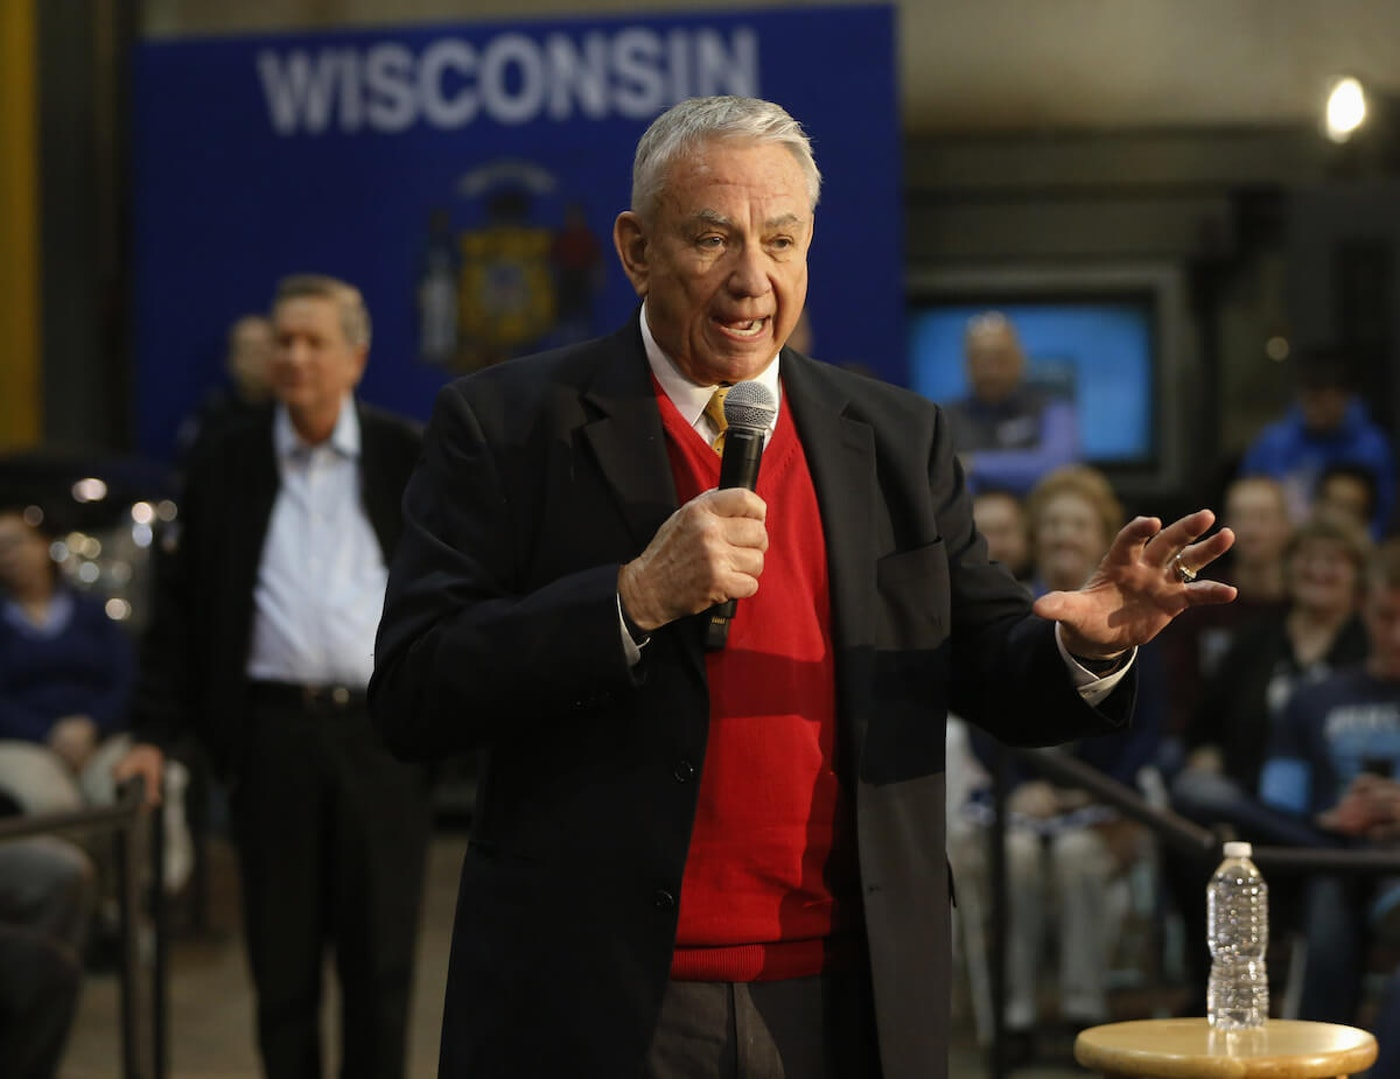 FILE- University of Wisconsin System President and former Gov. Tommy Thompson addresses a crowd at a March 28, 2016, campaign event for then-Ohio Gov. John Kasich, who was running in the Republican presidential primary, at the River Steel plant in West Salem. (AP Photo/Charles Rex Arbogast)